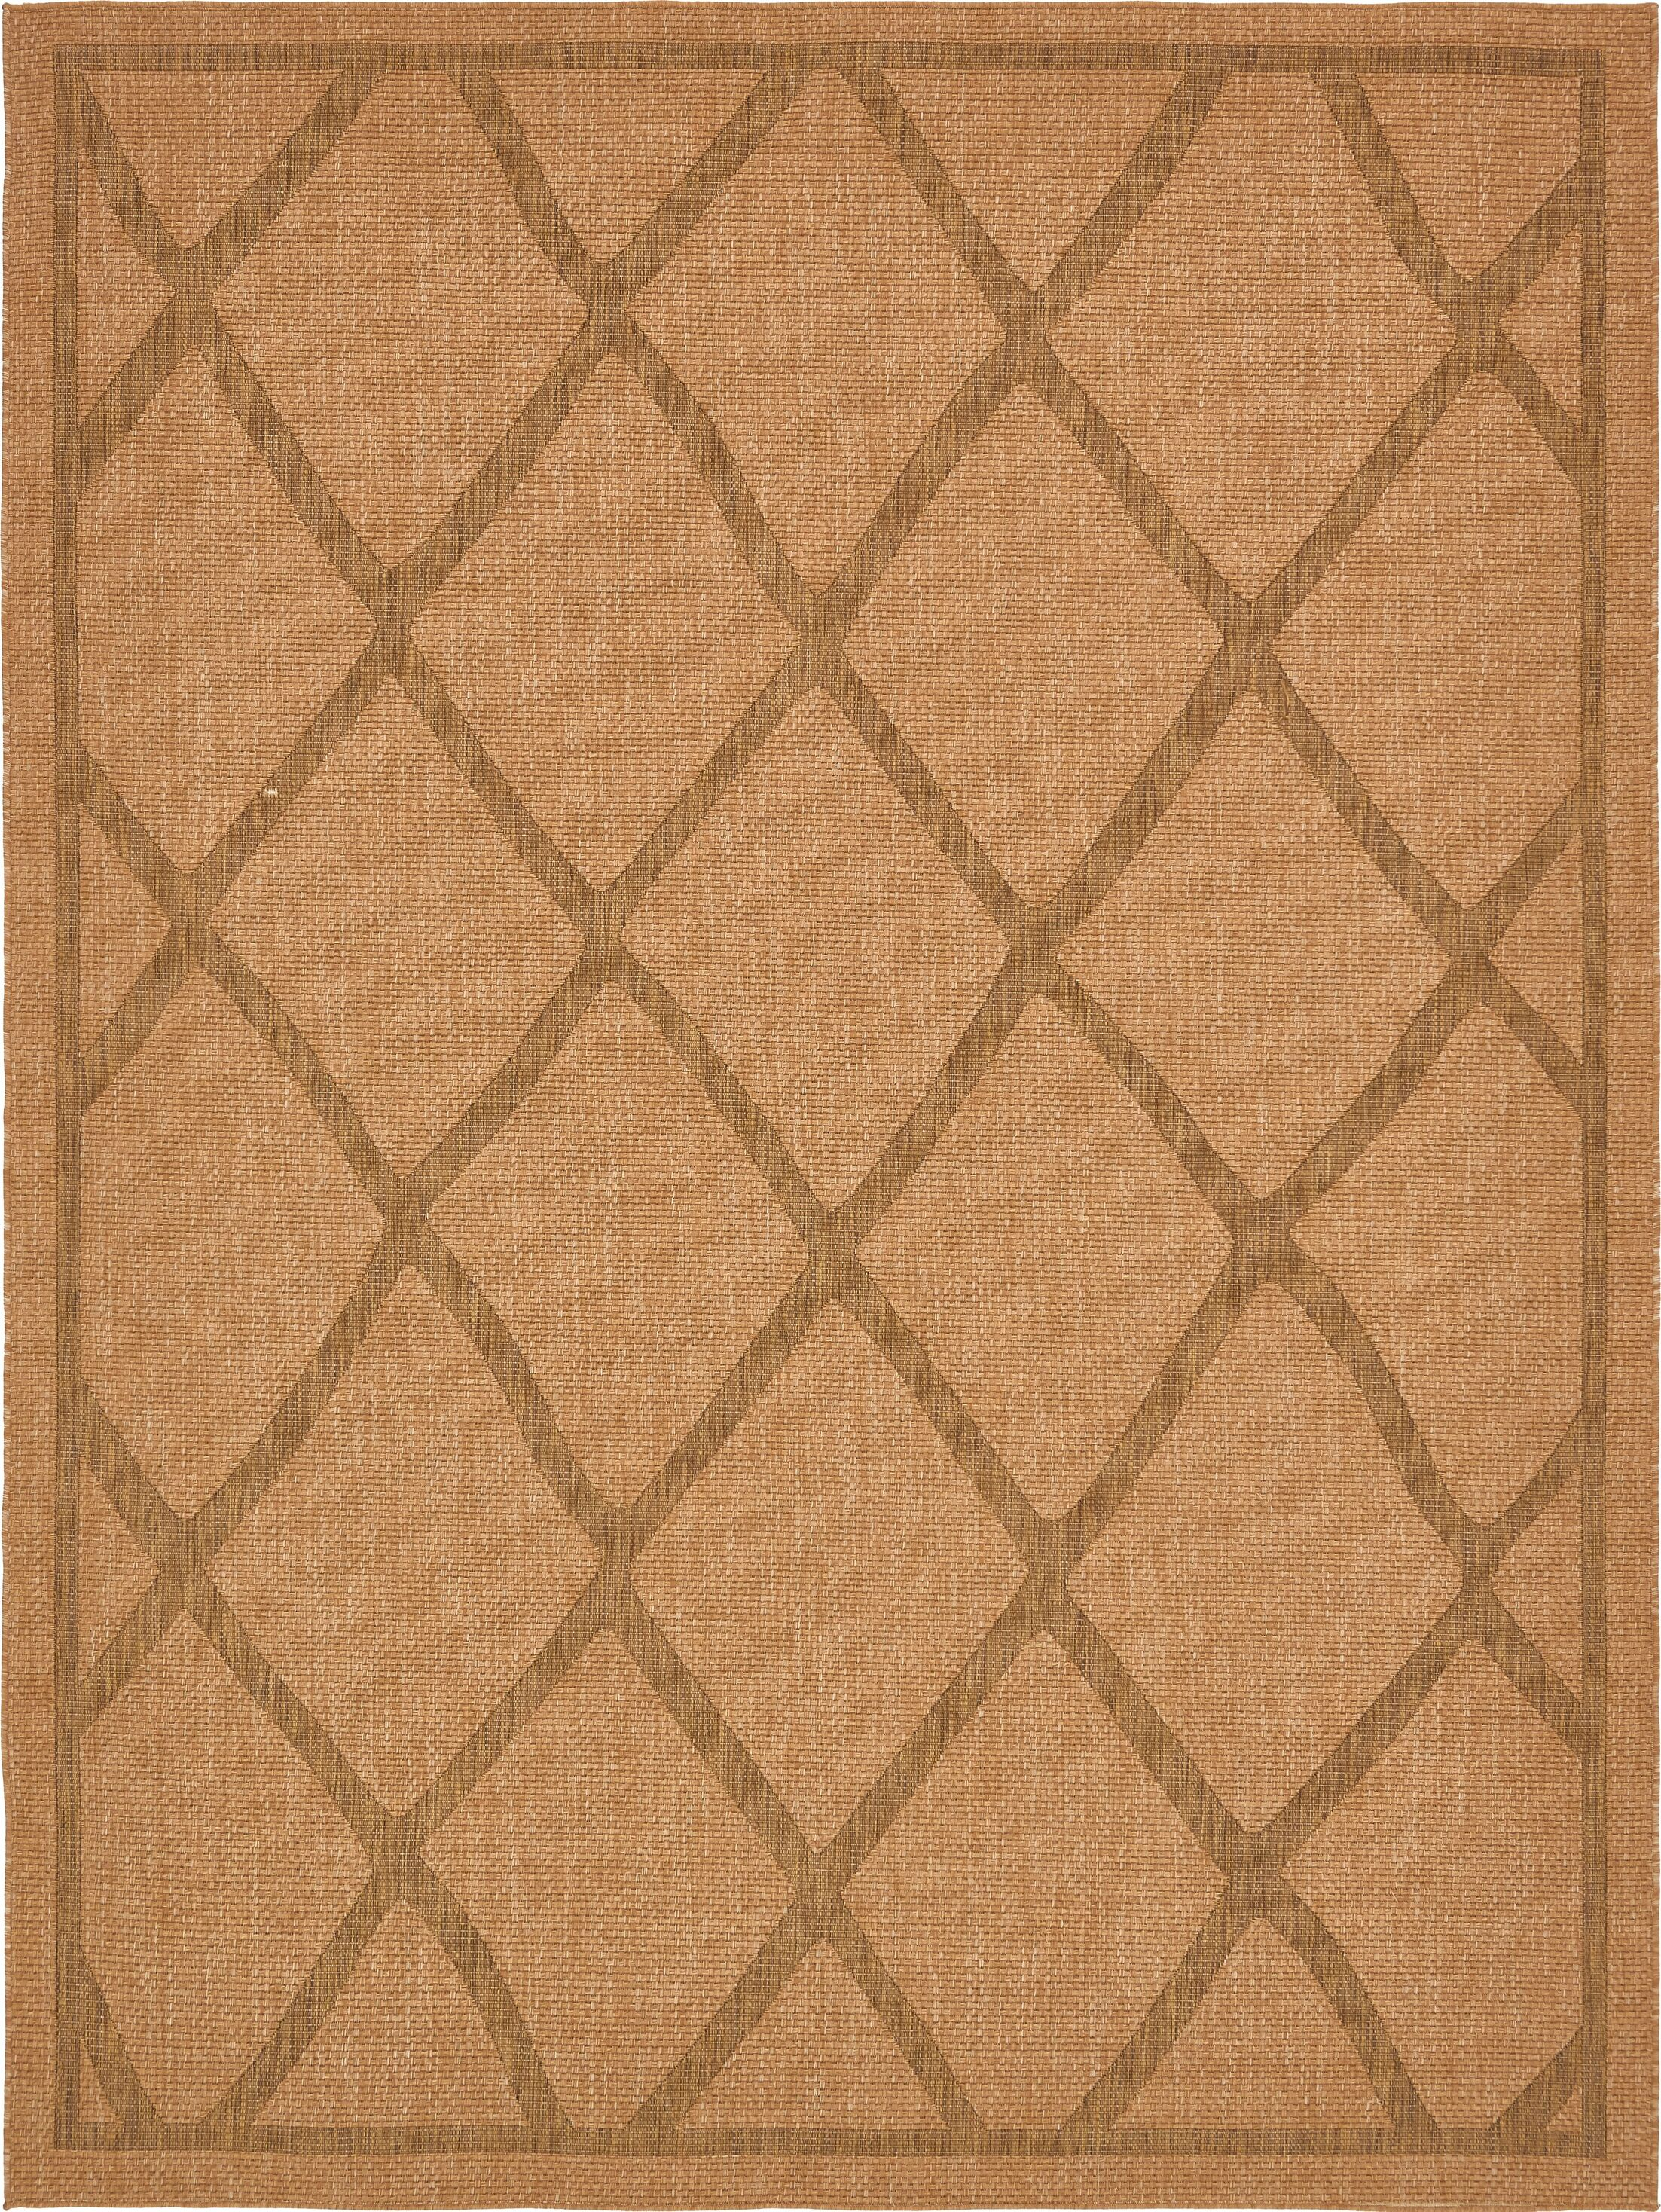 Kulick Light Brown Outdoor Area Rug Rug Size: Rectangle 9' x 12'